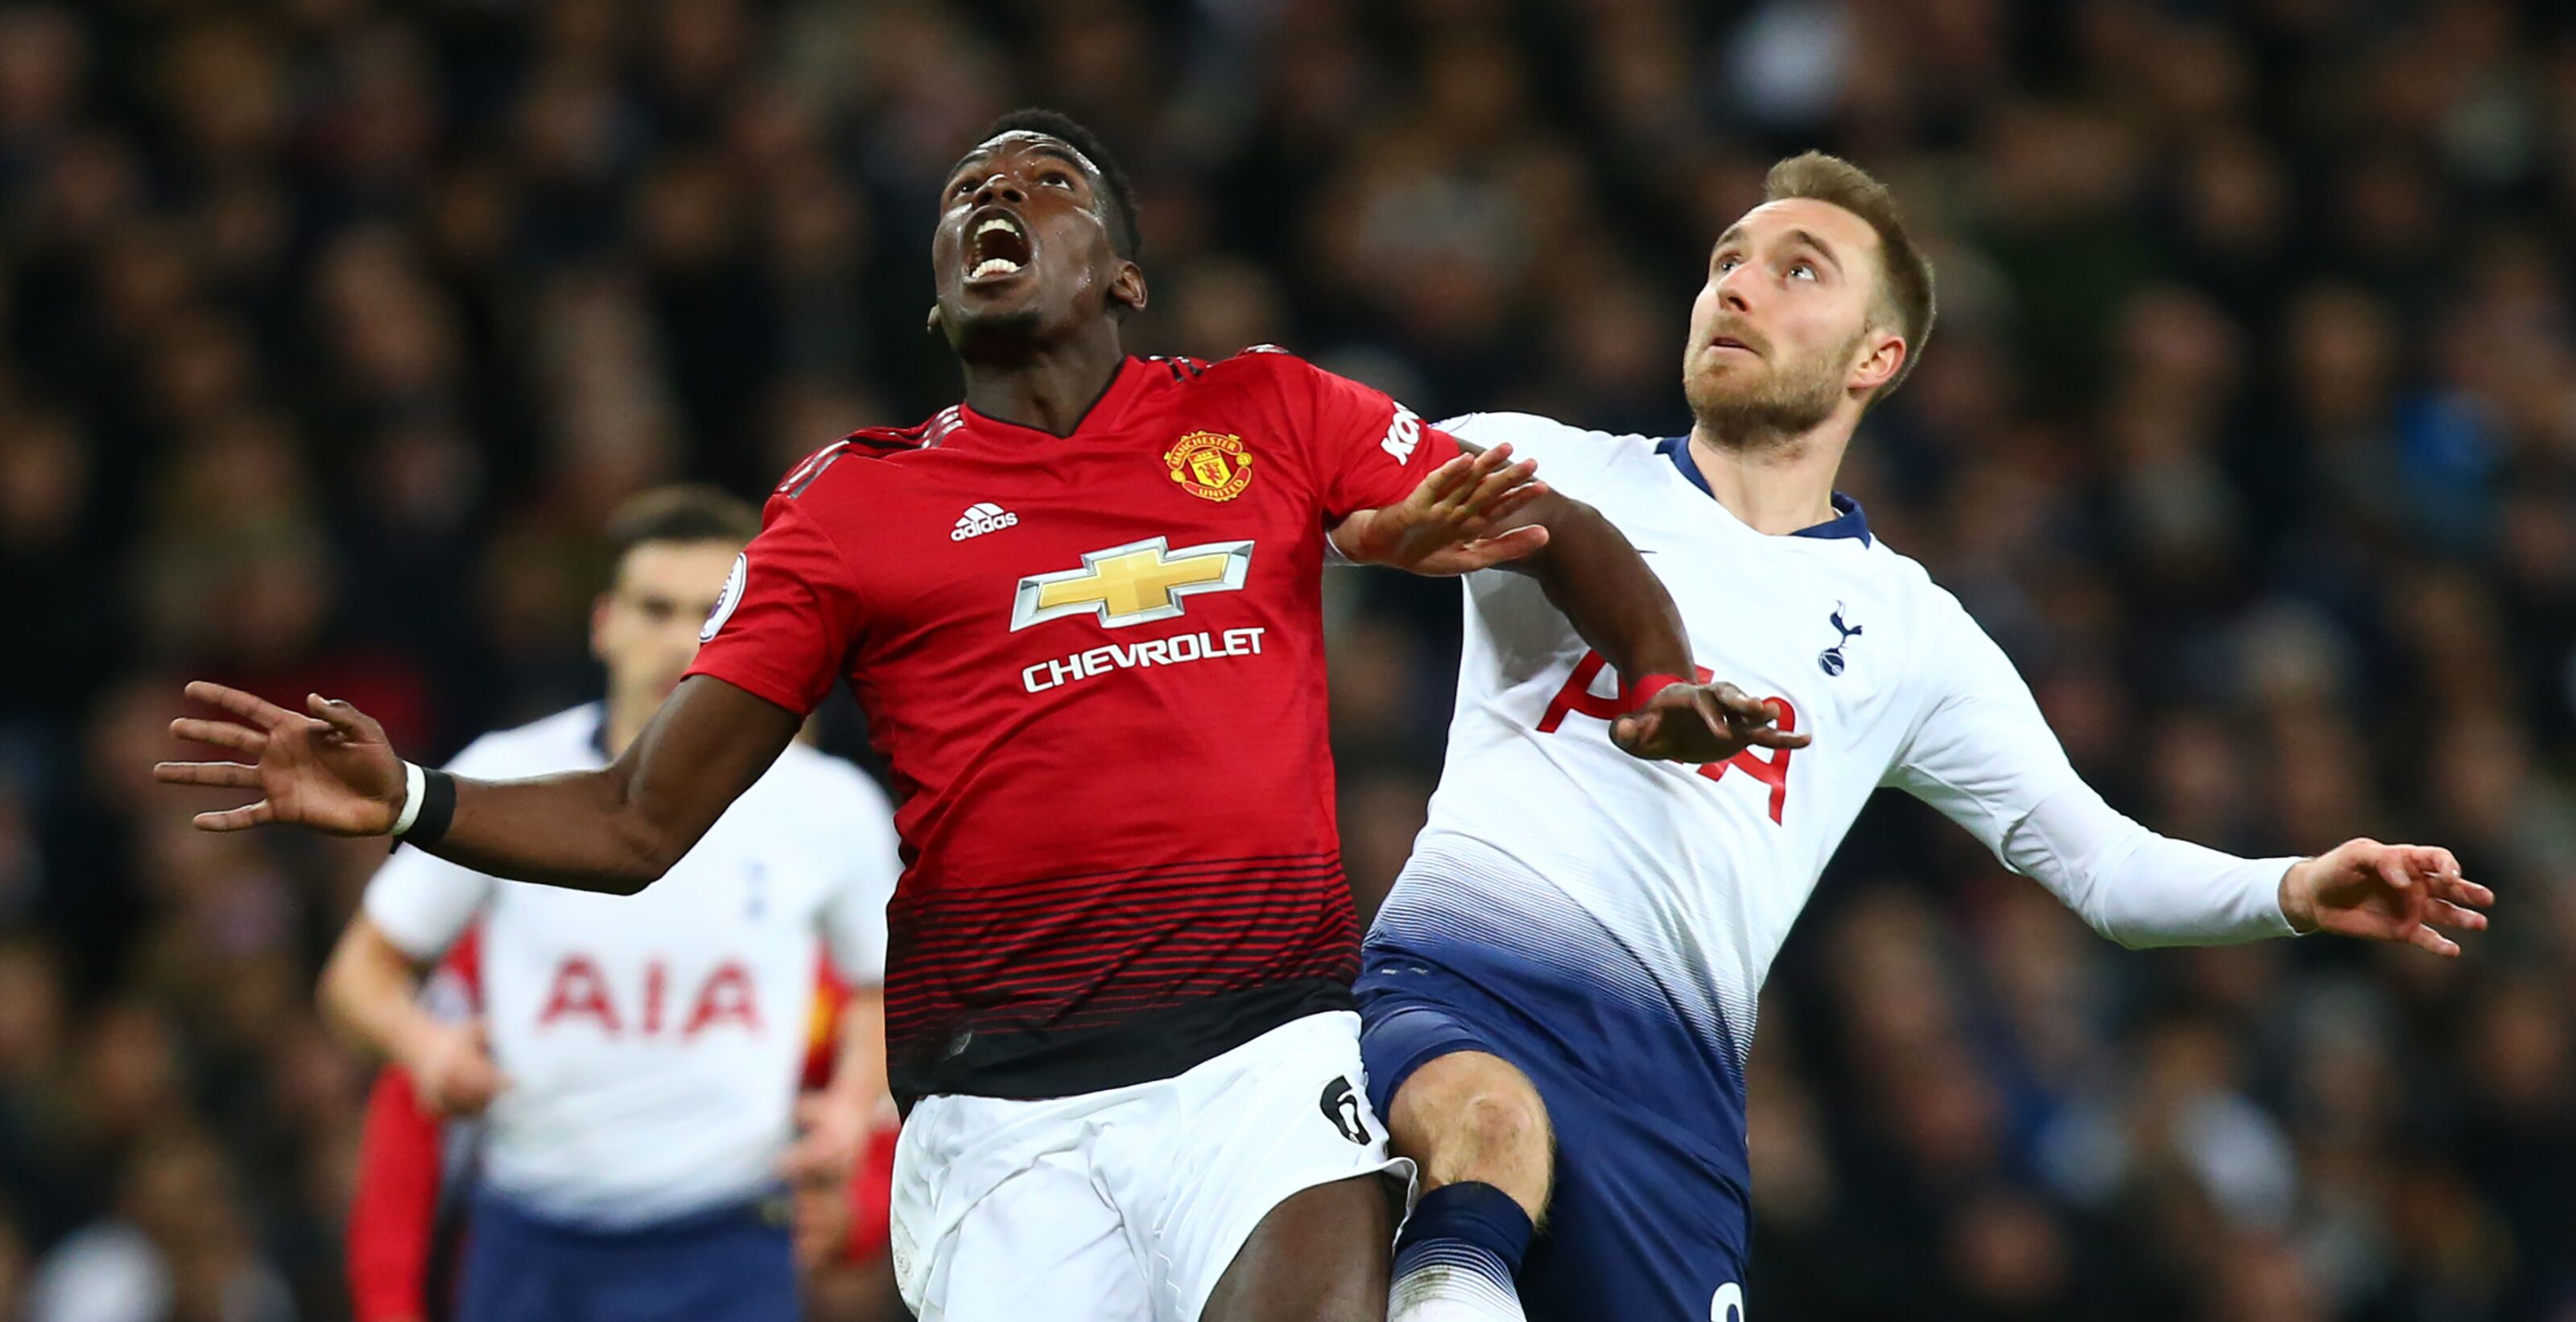 Real Madrid finally make a worthwhile offer for Paul Pogba